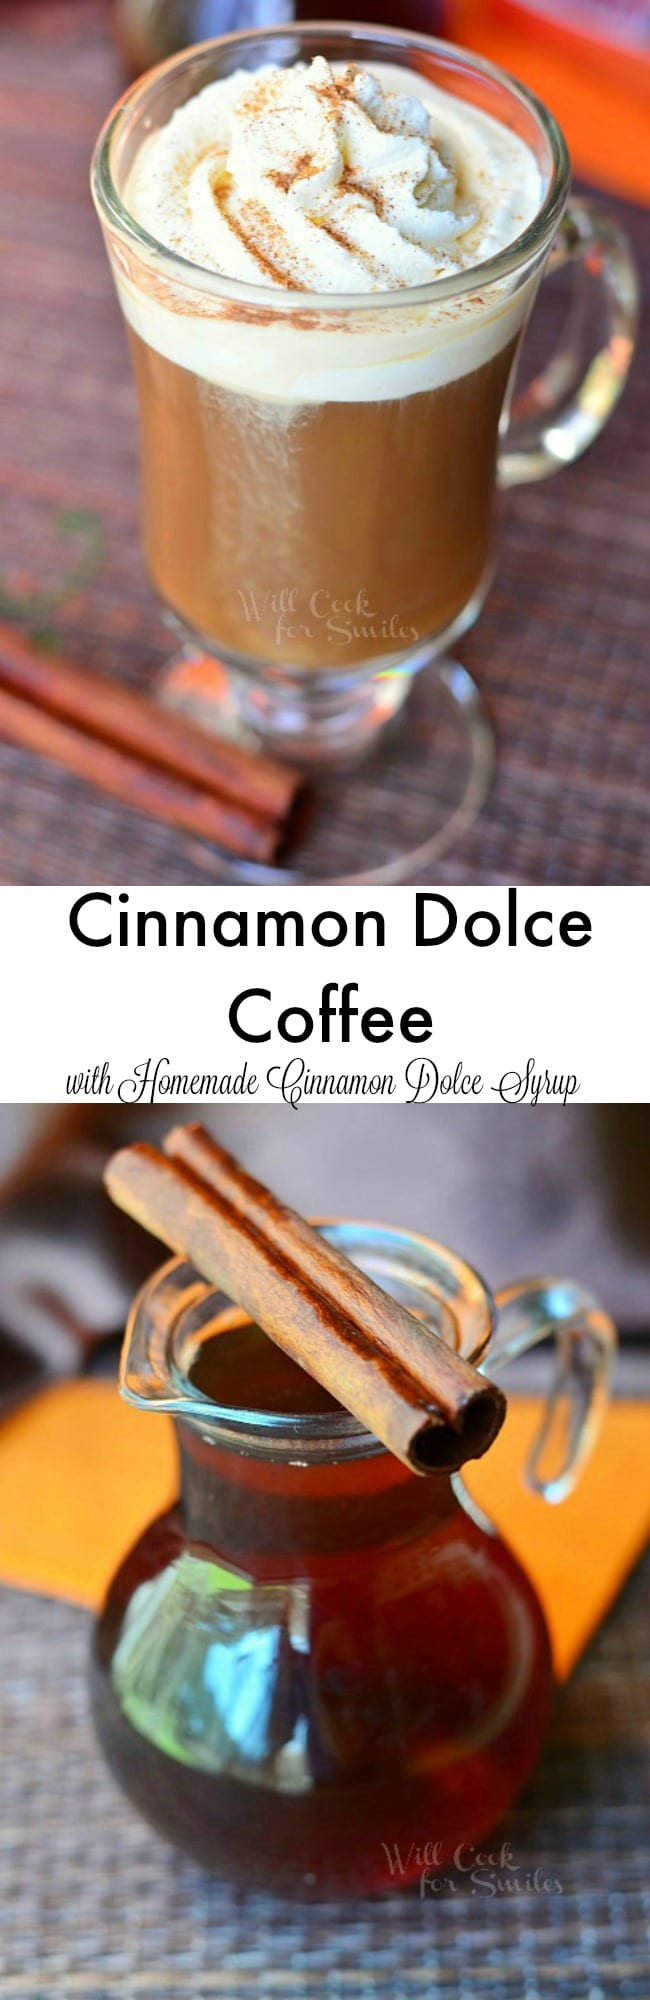 cinnamon-dolce-coffee-drink-with-homemade-cinnamon-dolce-syrup